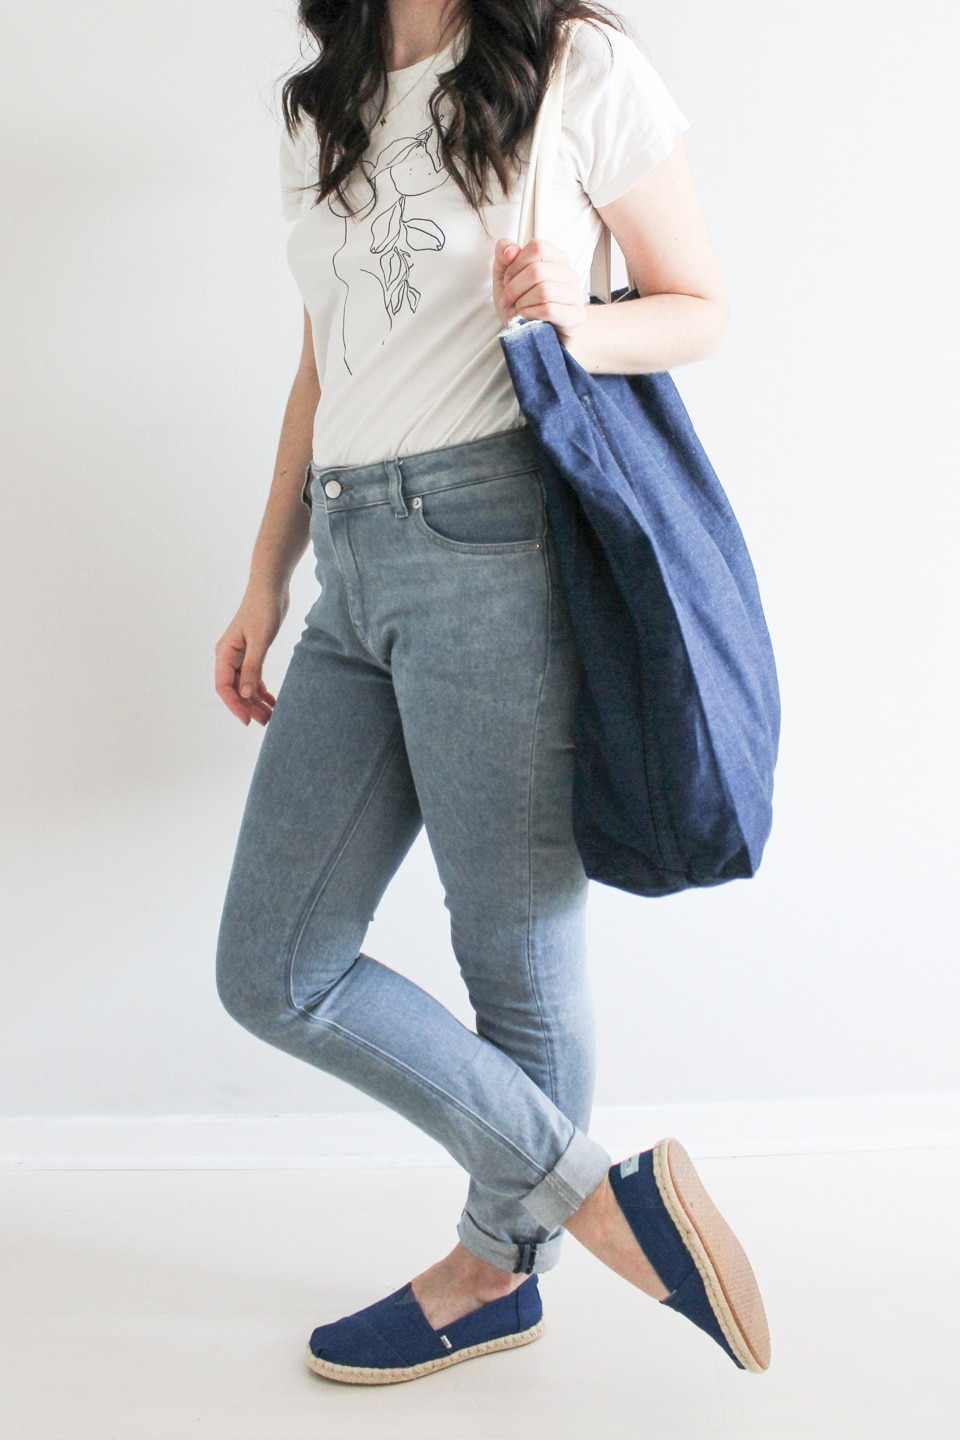 Blue TOMS Shoes styled with white t-shirt, jeans, and denim tote bag